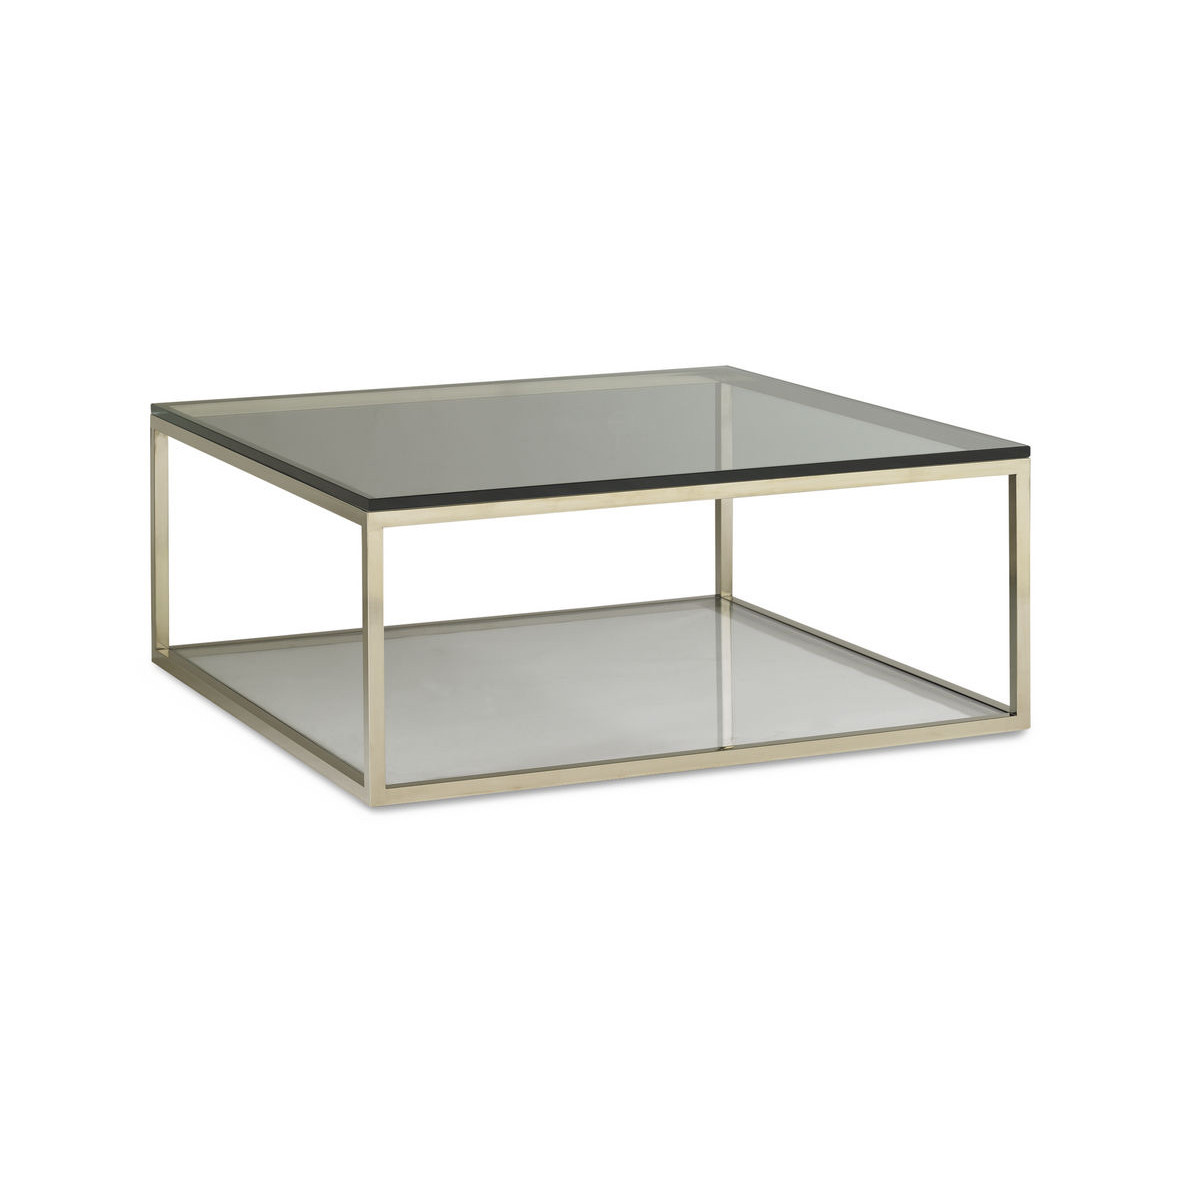 Image of: Argo Glass Square Coffee Table